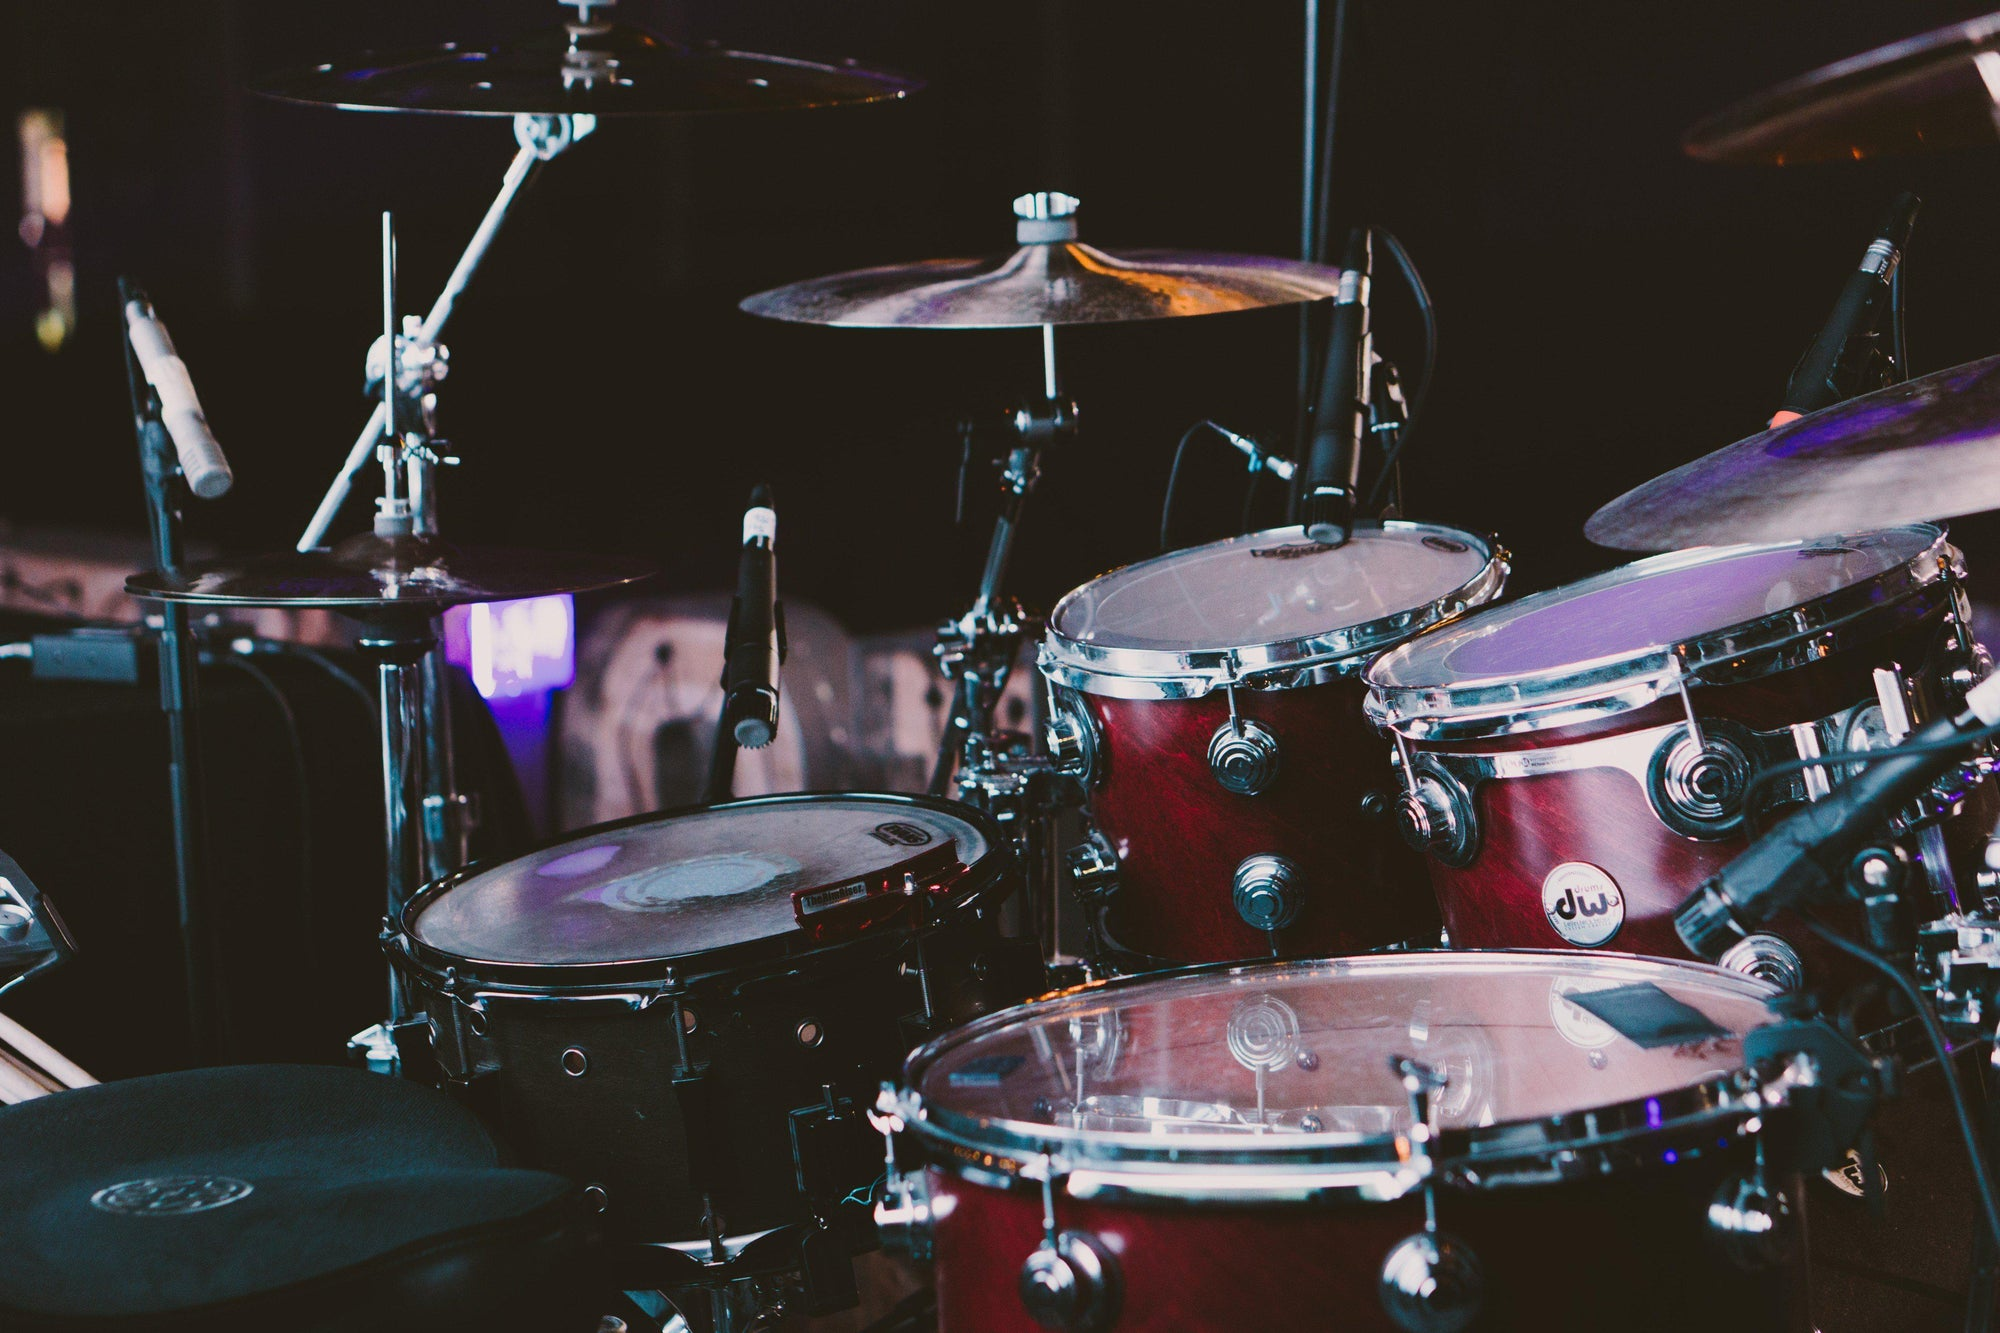 The Definitive Guide to Buying Your First Drum Kit